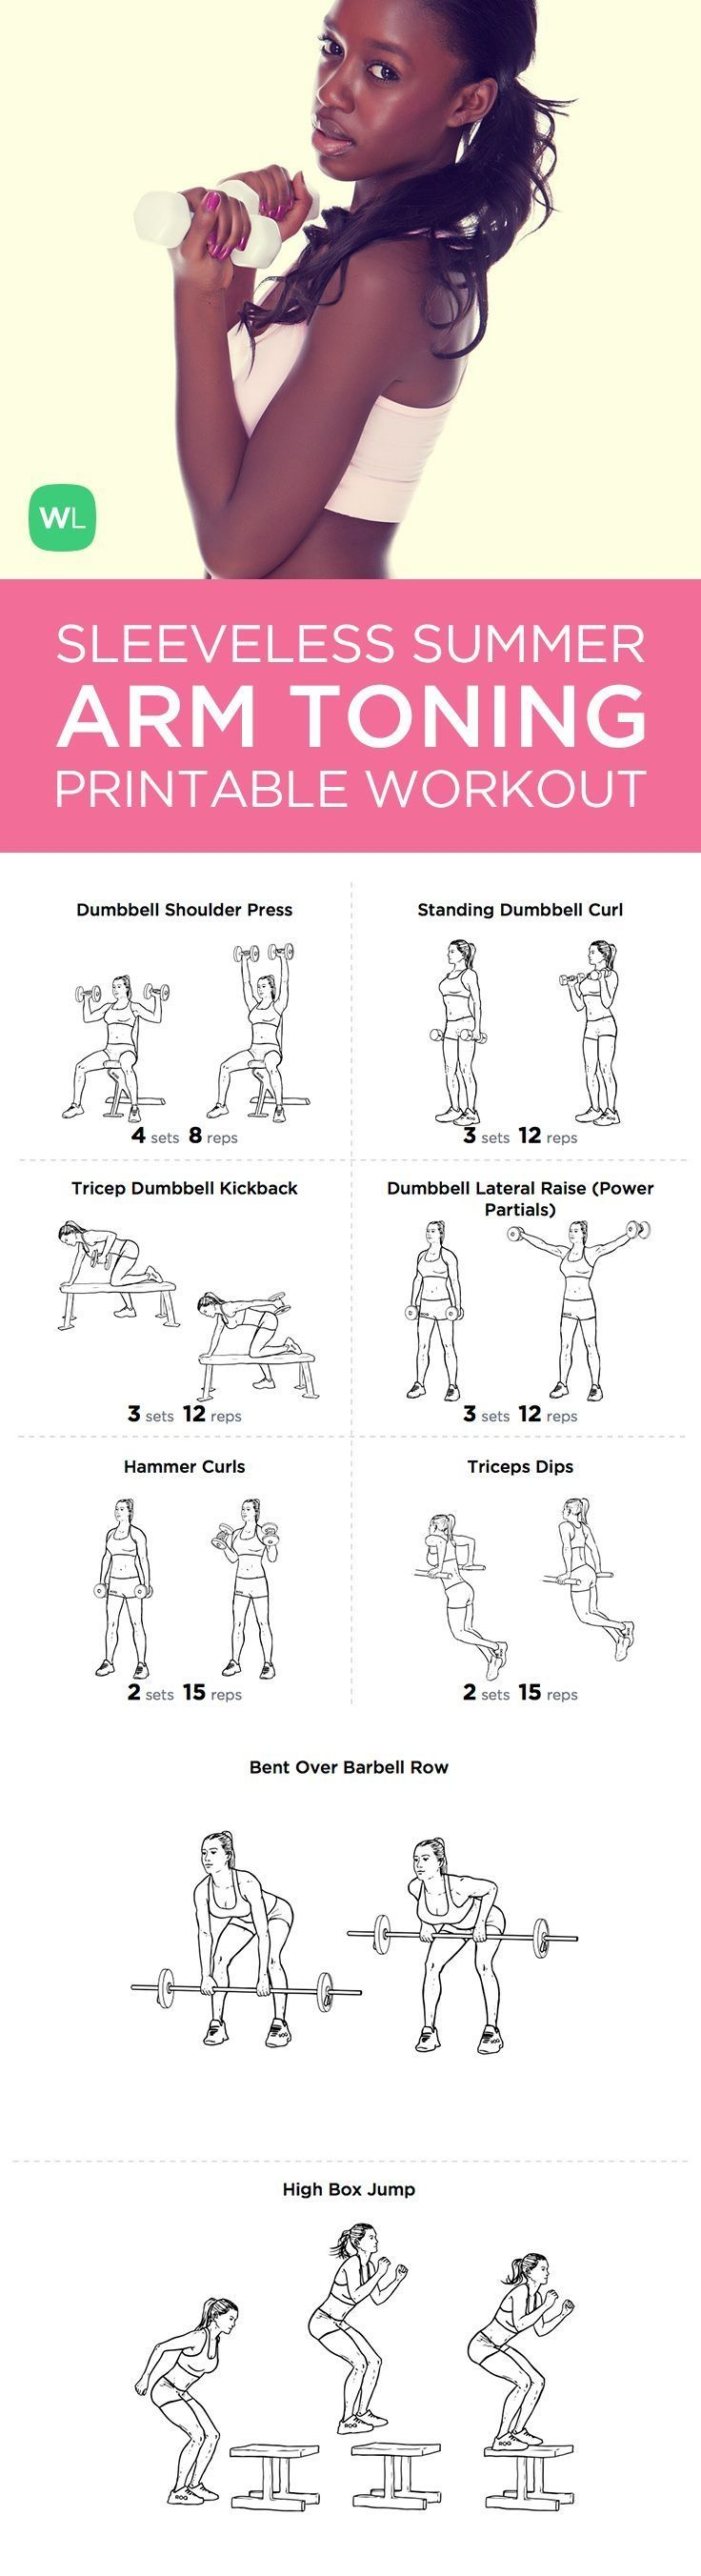 1000+ images about Belly fat cure diet on Pinterest ...